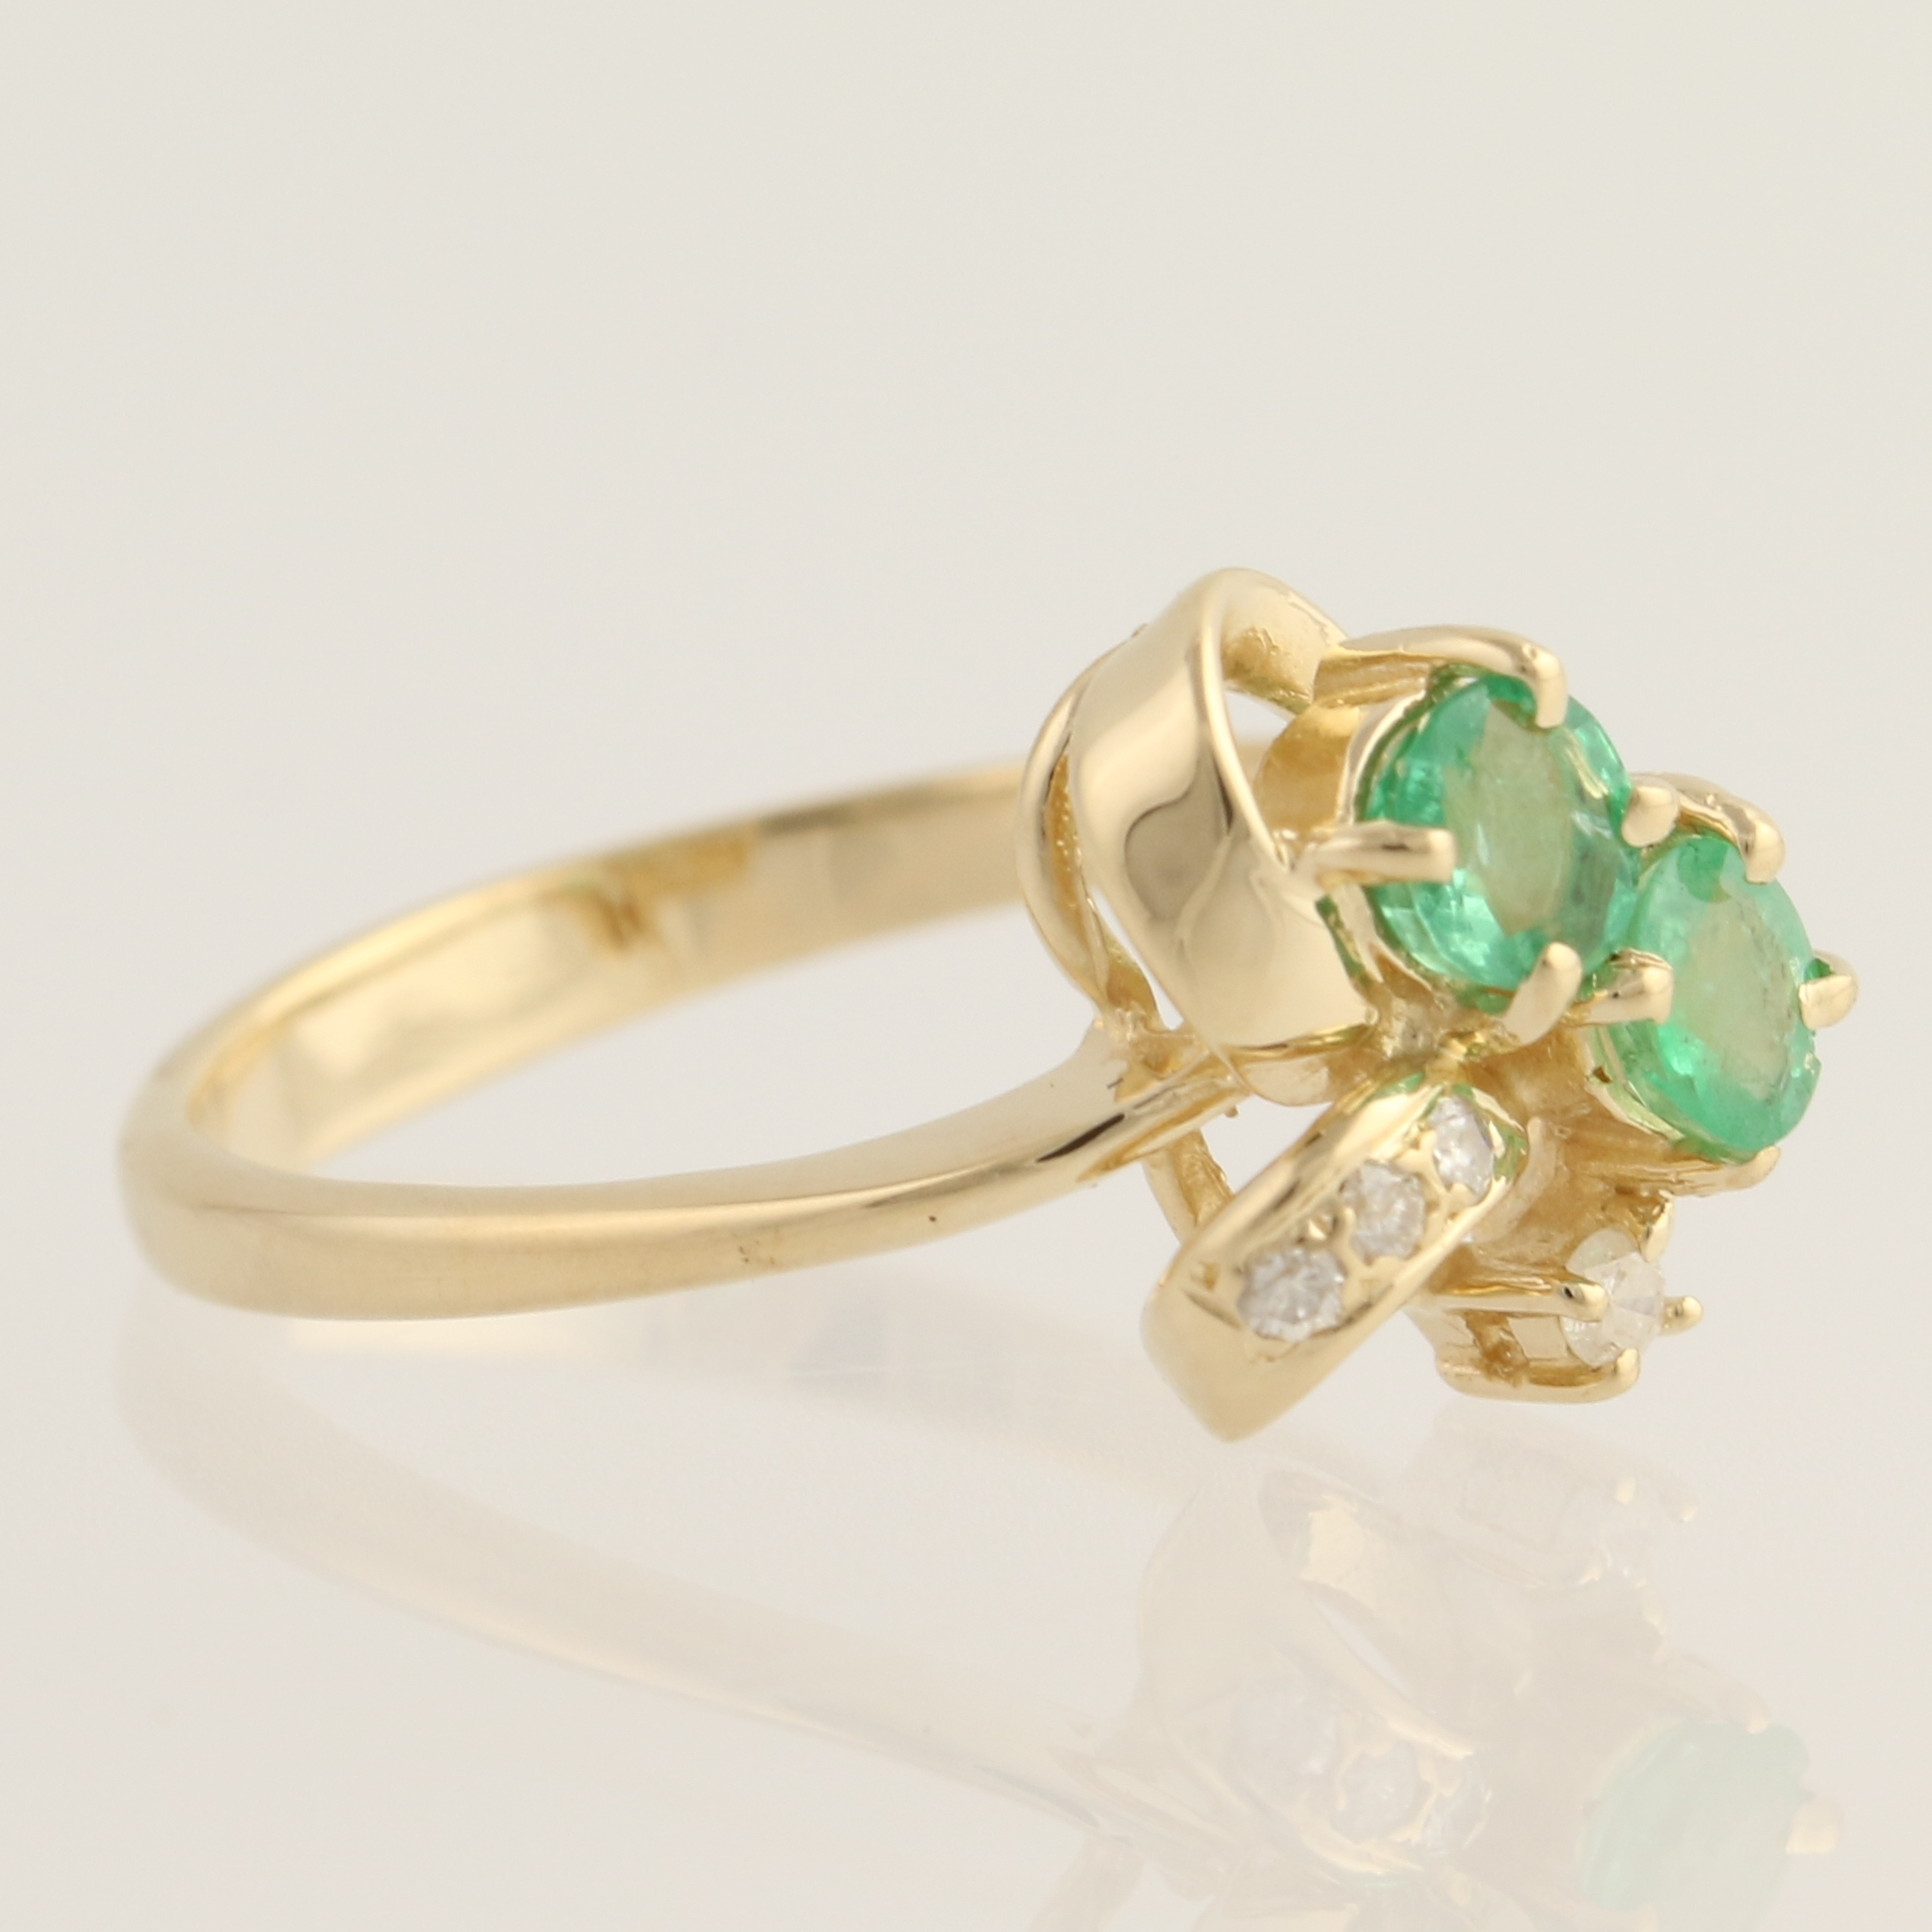 emerald ring 14k yellow gold bypass may